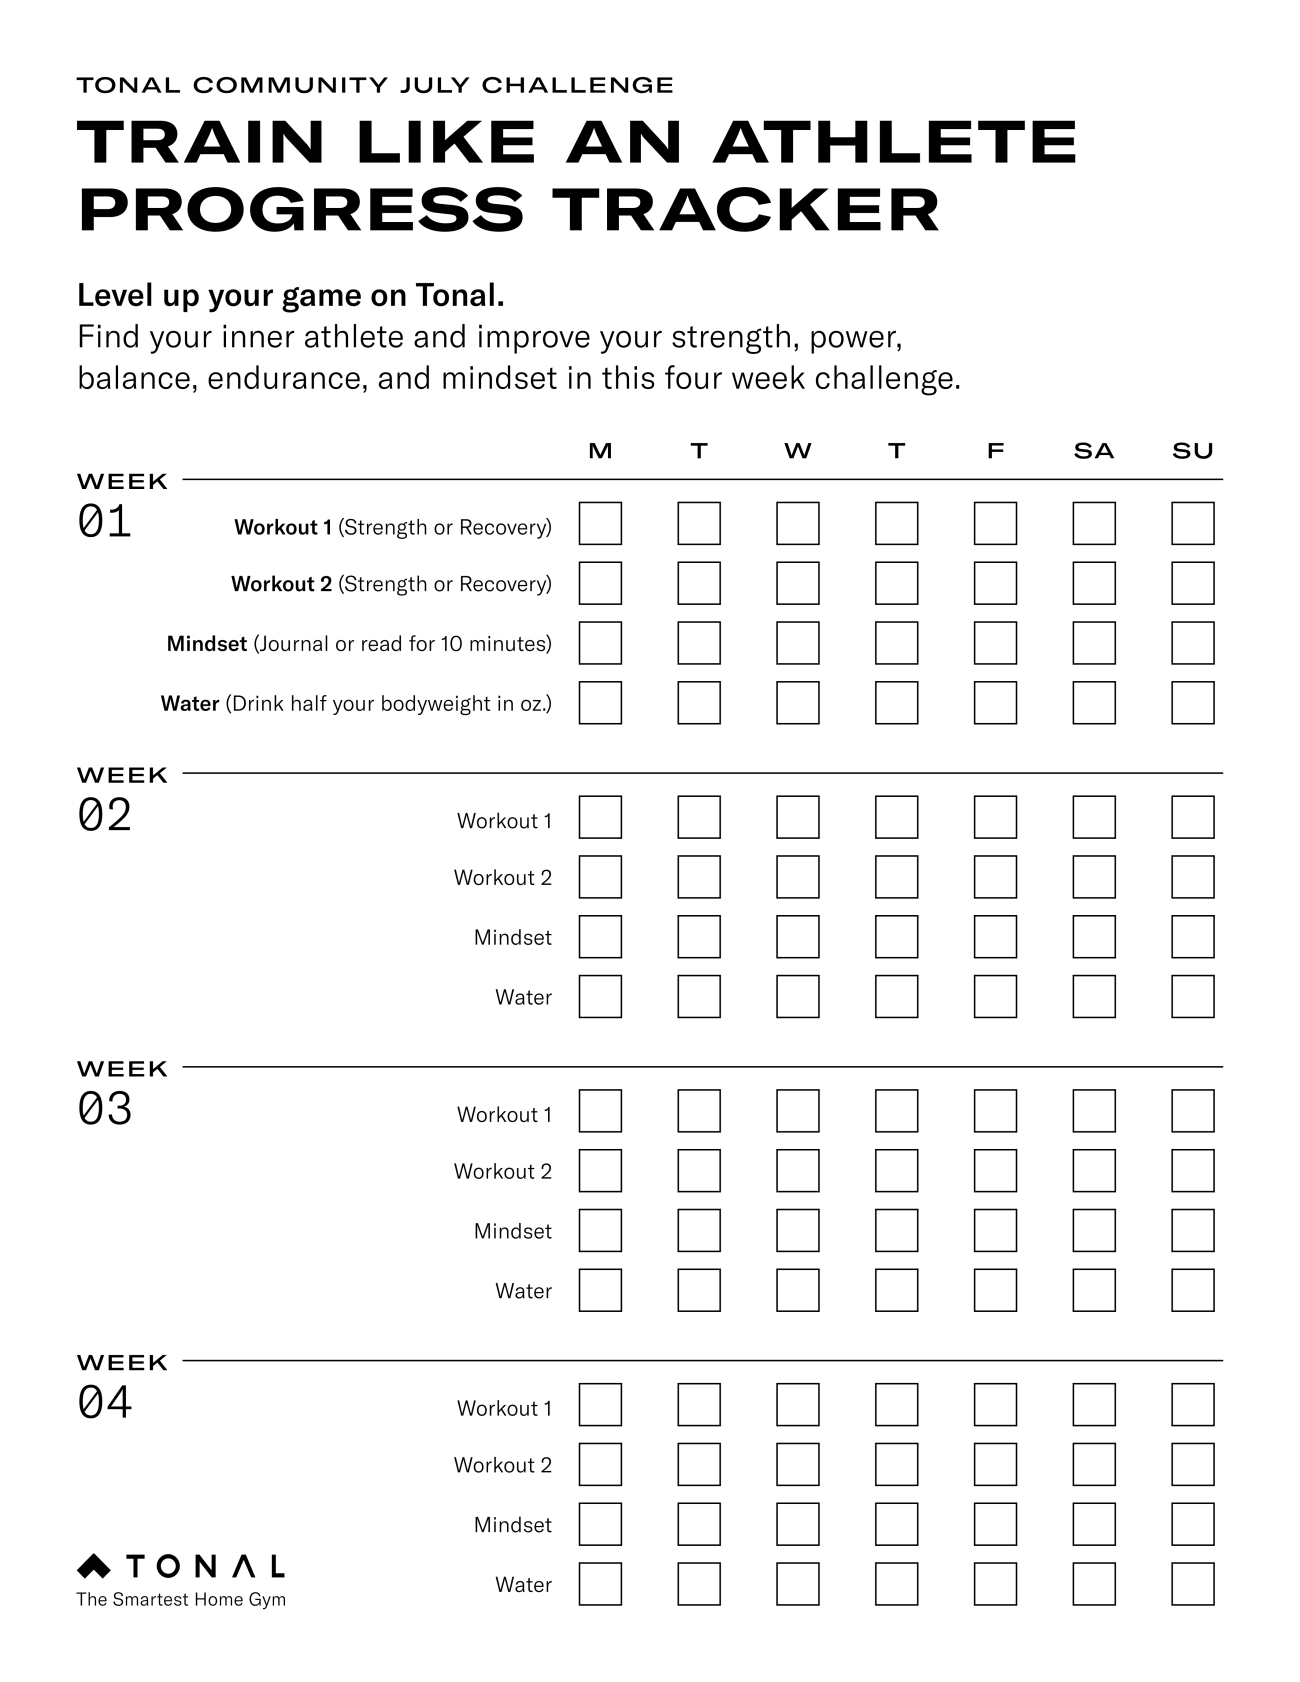 a weekly habits tracker with checkboxes for every day day of the week